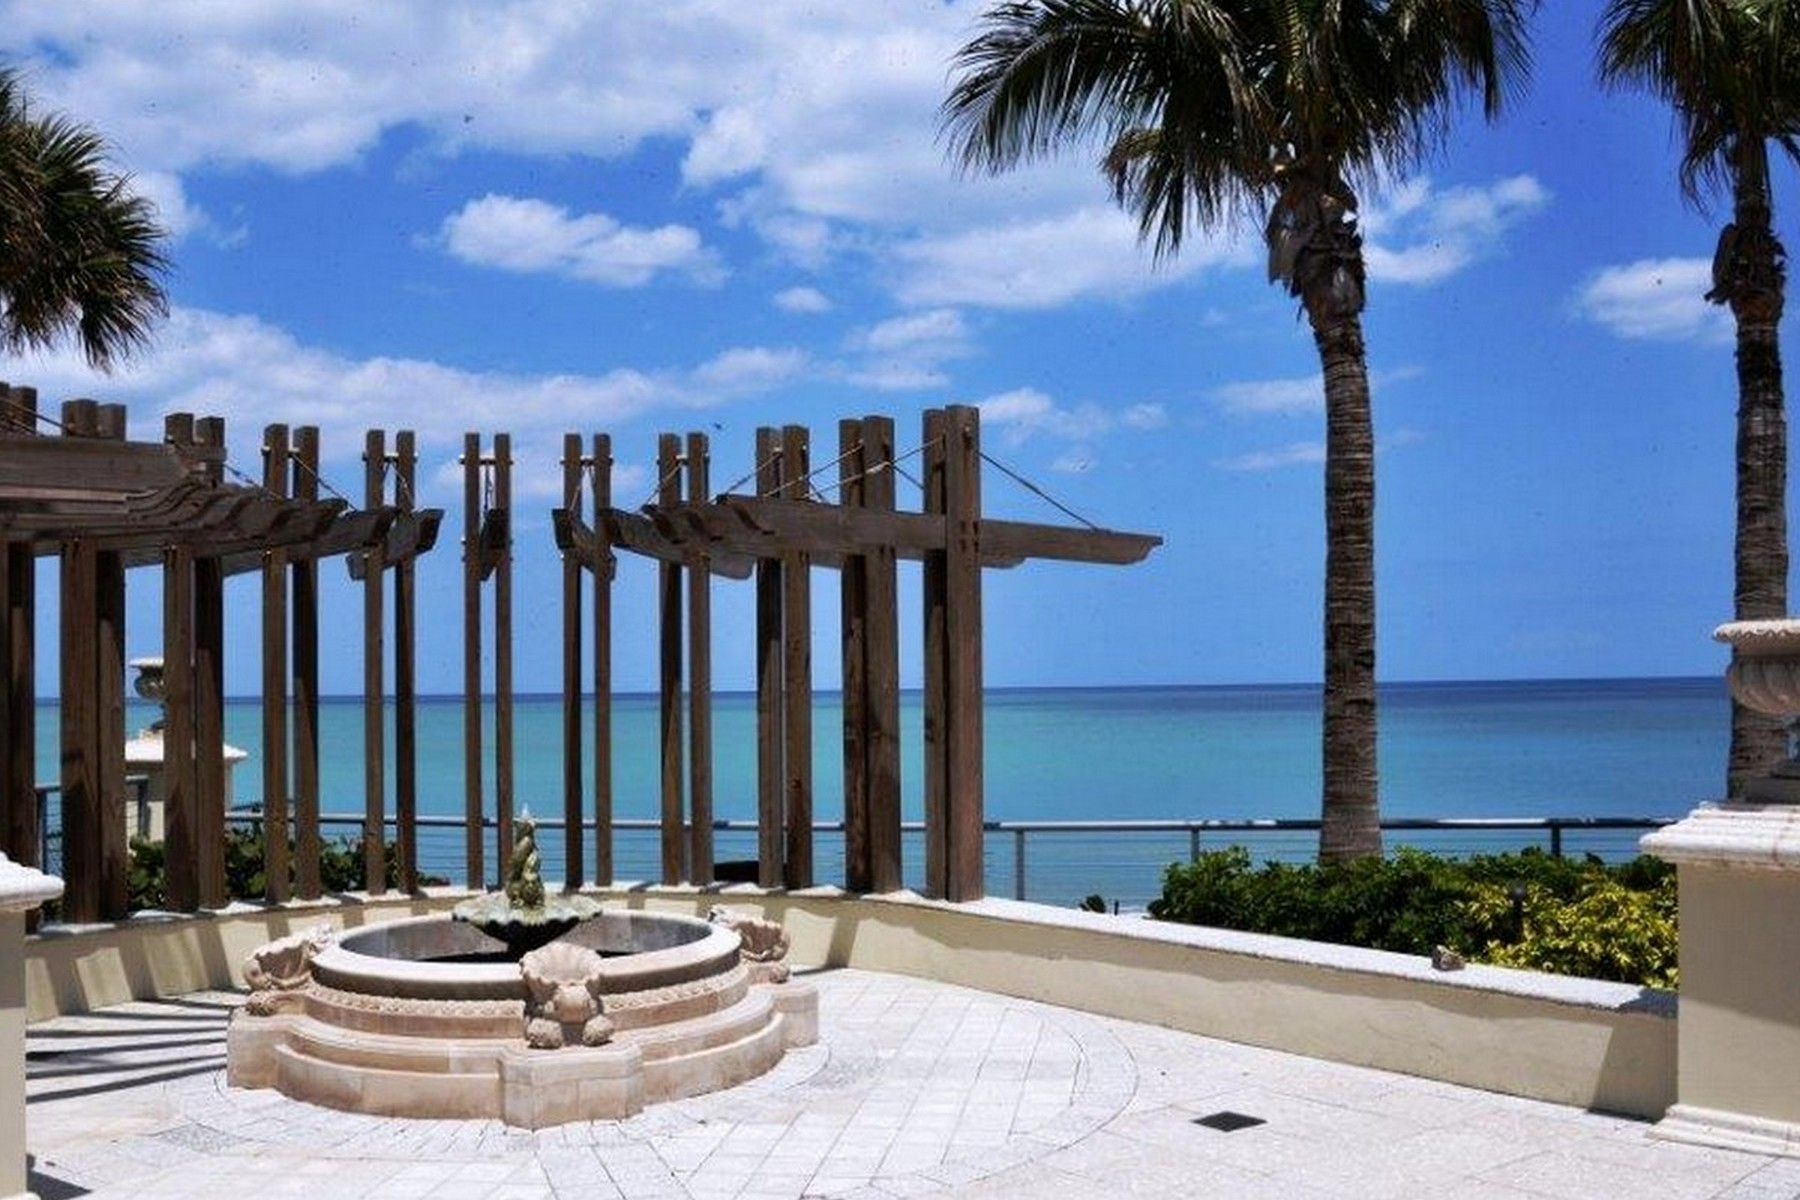 Property for Sale at Lovely Condo in Vero Beach Hotel and Spa 3500 Ocean Drive #103 Vero Beach, Florida 32963 United States